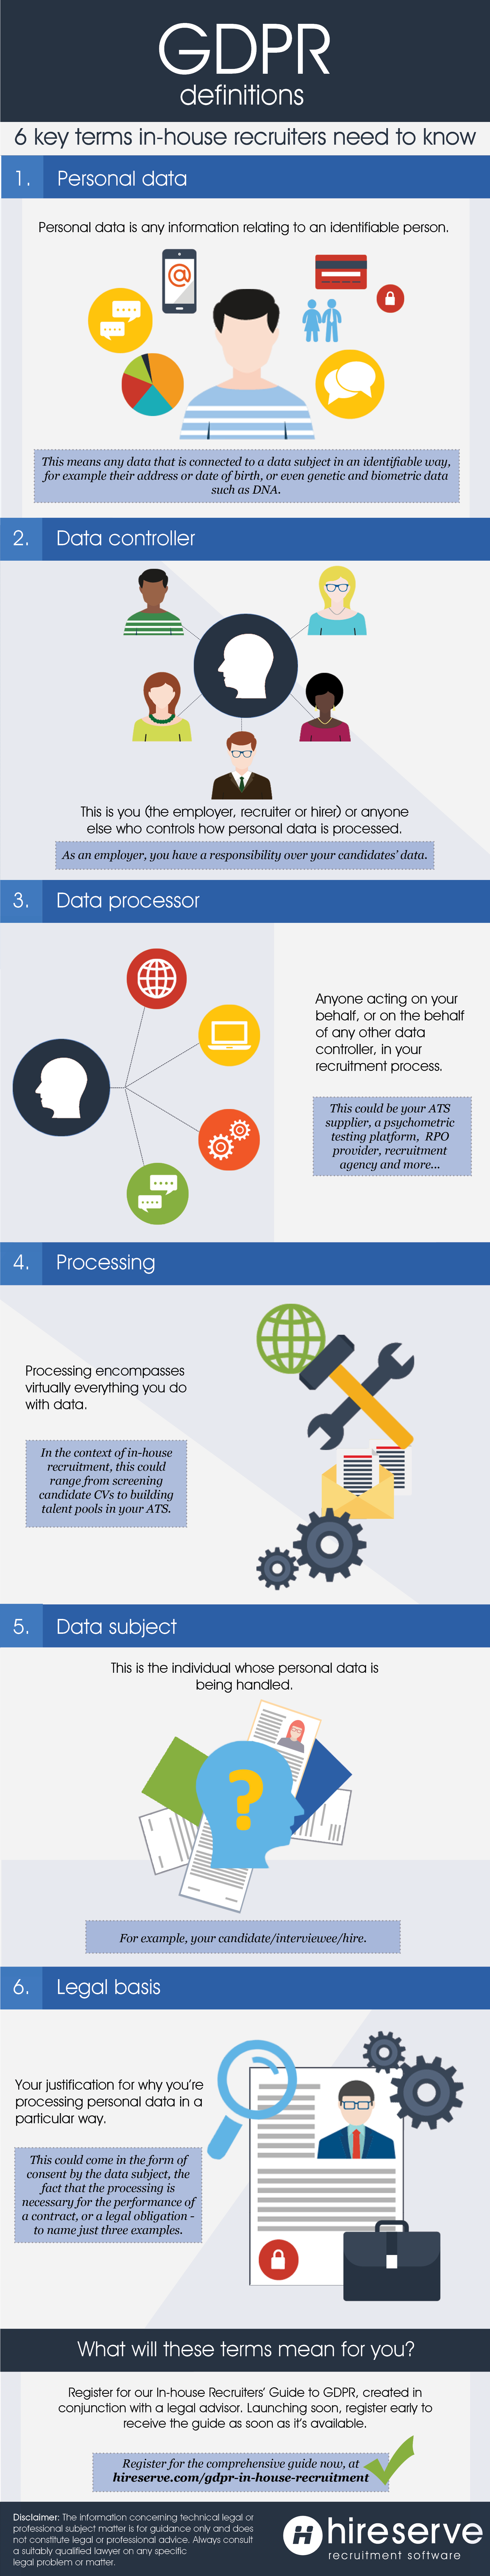 GDPR key terms infographic